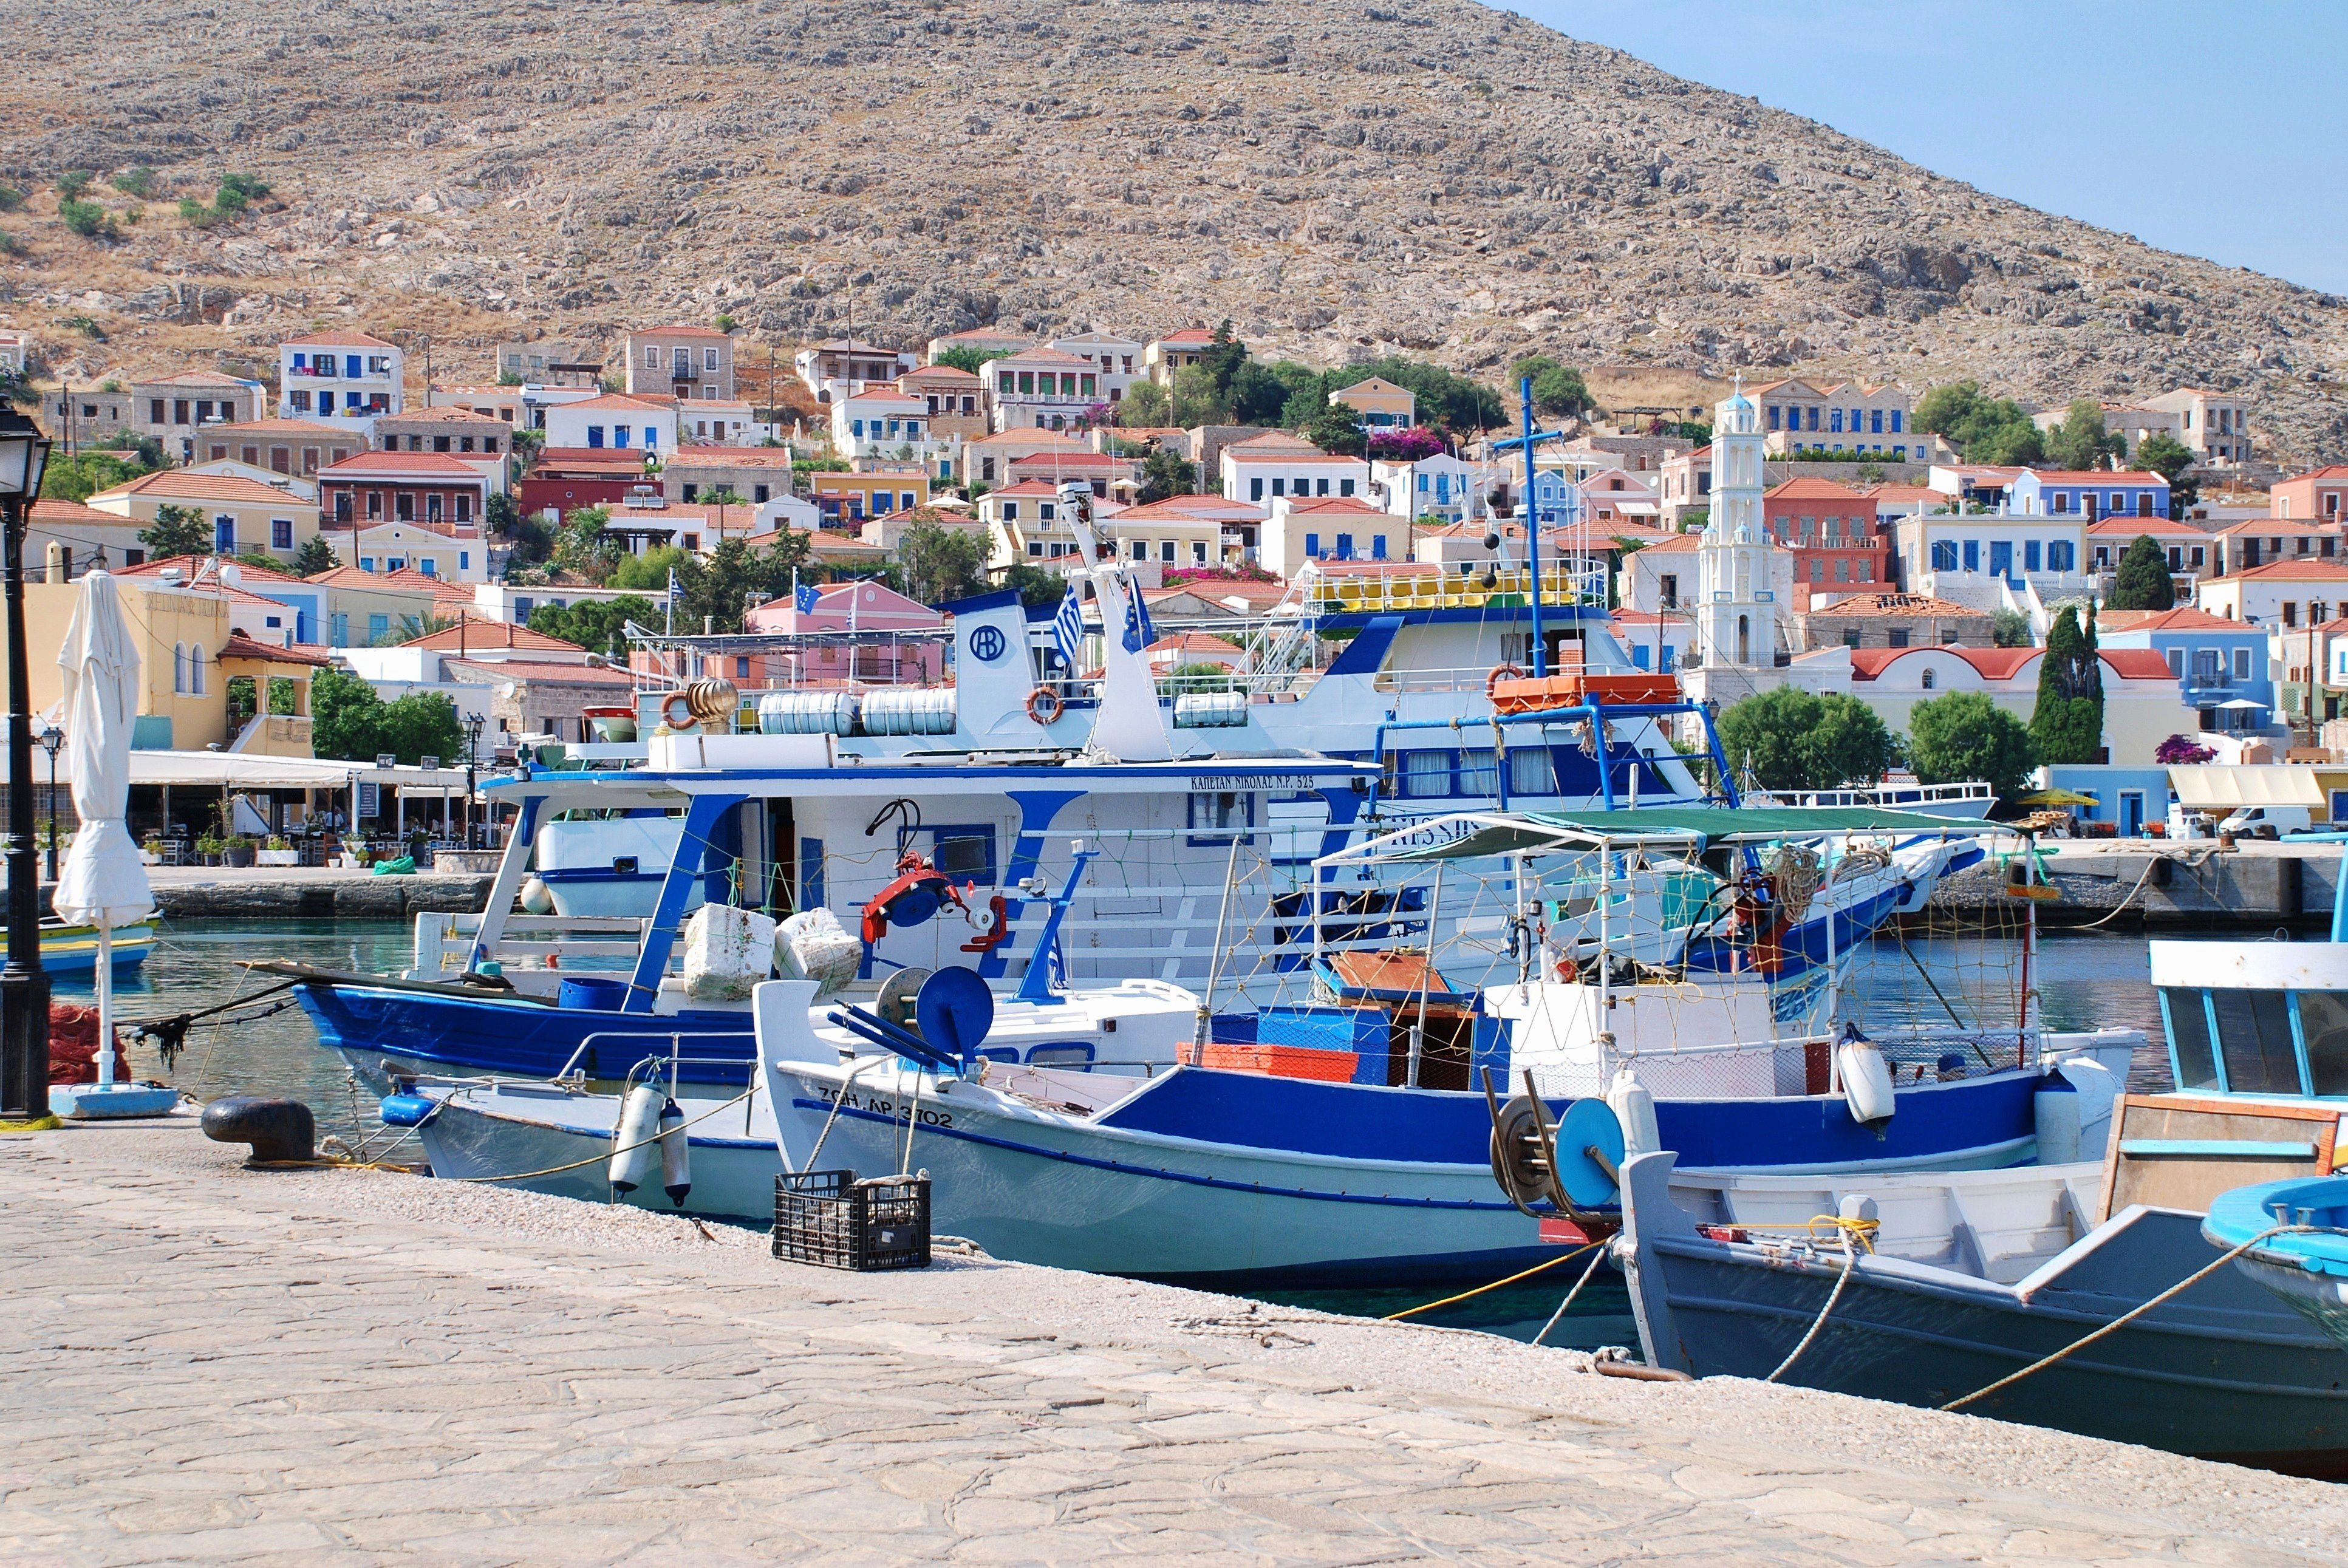 Halki, Greece - June 5, 2015: Small boats moored in the harbour at Emborio on the Greek island of Halki. The Dodecanese island has a population of less than 300 people.